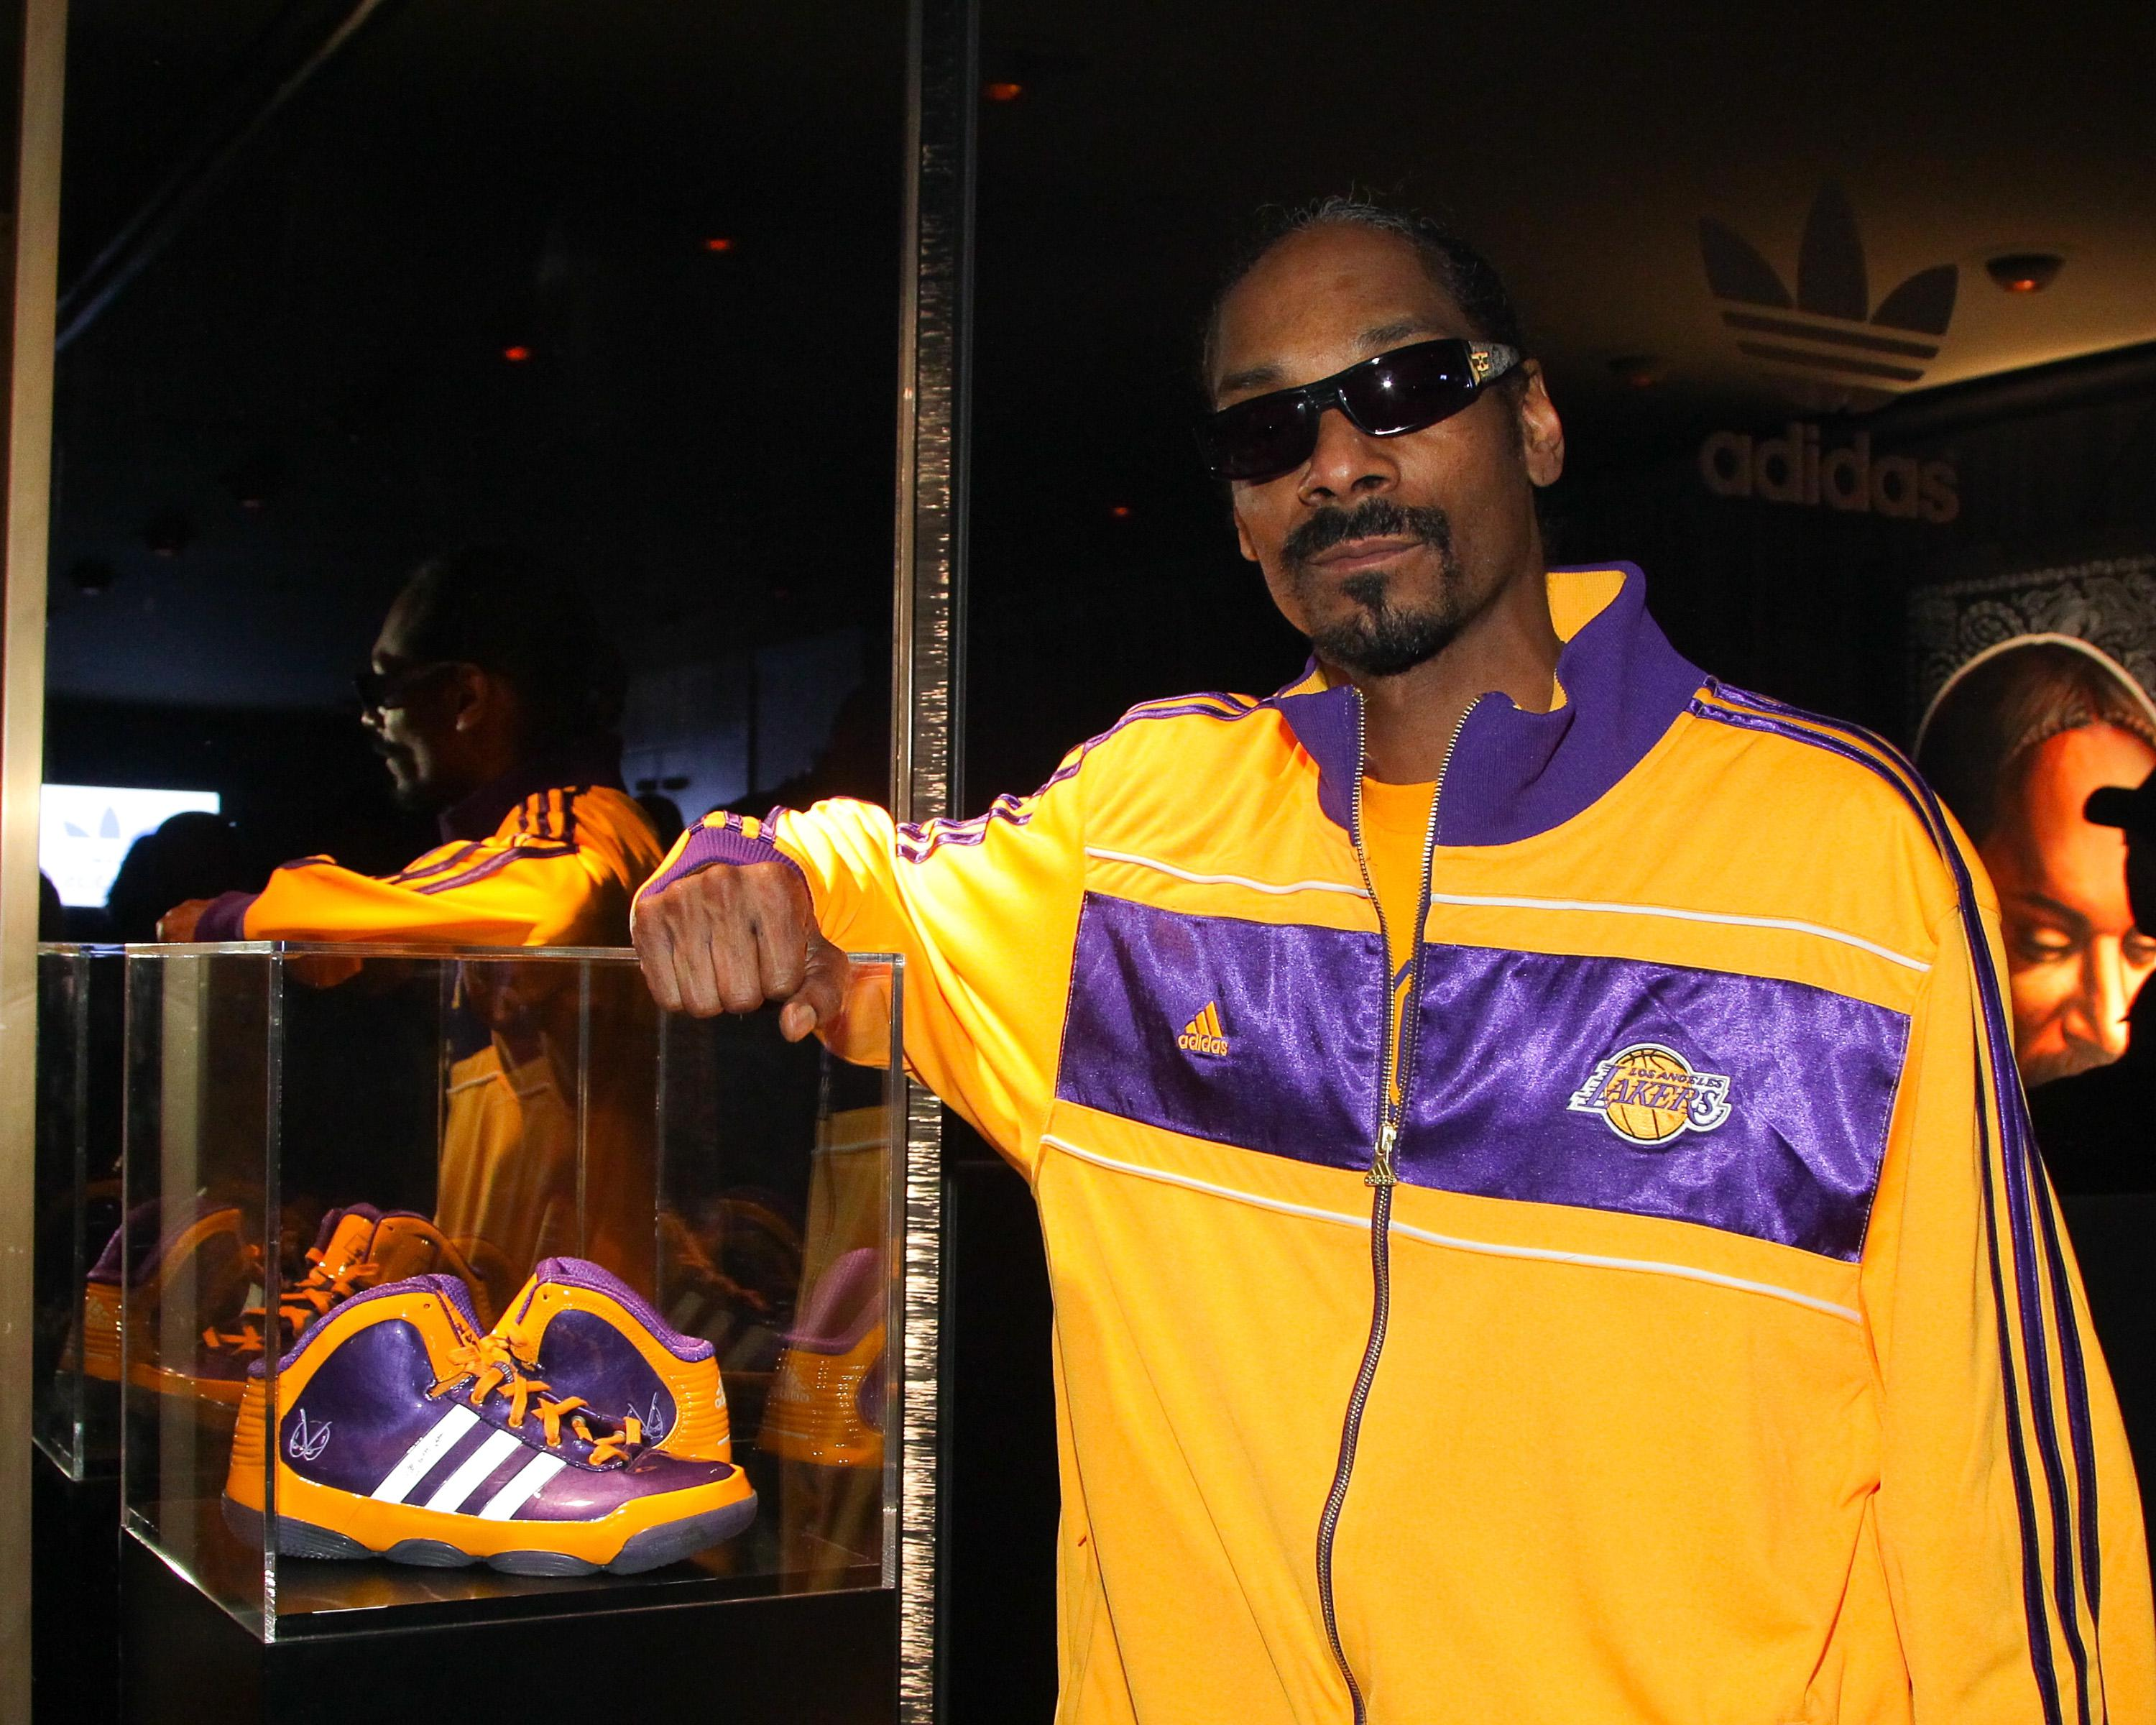 adidas And Snoop Dogg Co-Host ASW Party